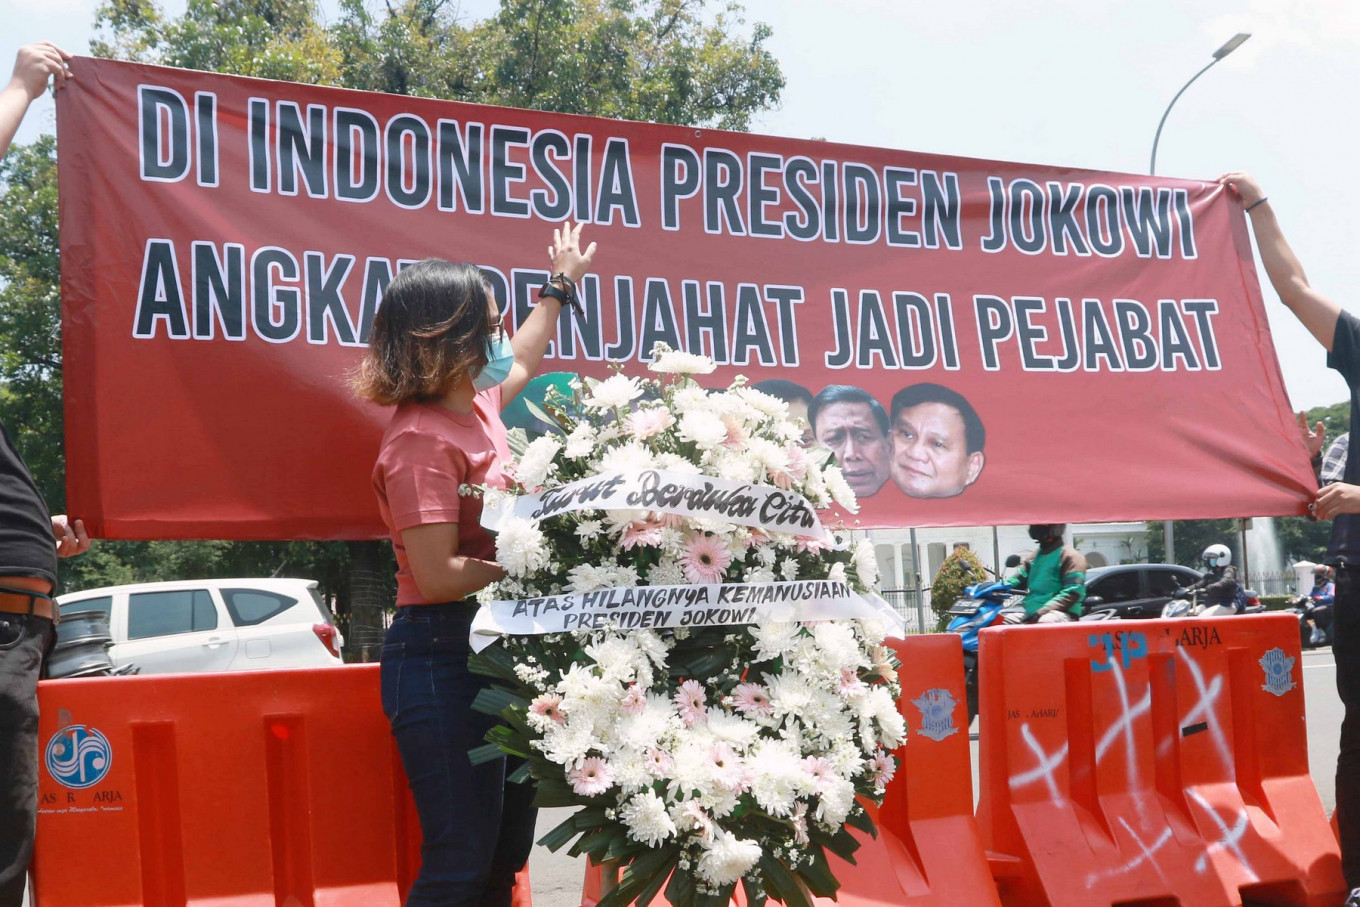 """An activist of the Commission for Missing Persons and Victims of Violence (Kontras) takes part in a protest in front of the State Palace in Central Jakarta on Oct. 5. Kontras and several organizations demand that President Joko """"Jokowi"""" Widodo annul the promotions of Brig. Gen. Dadang Hendrayudha and Brig. Gen. Yulius Selvanus as state officials in the Defense Ministry. The two are former members of Tim Mawar, who were convicted by the Military Court in 1999 for their involvement in the abduction of activists. JP/Dhoni Setiawan."""